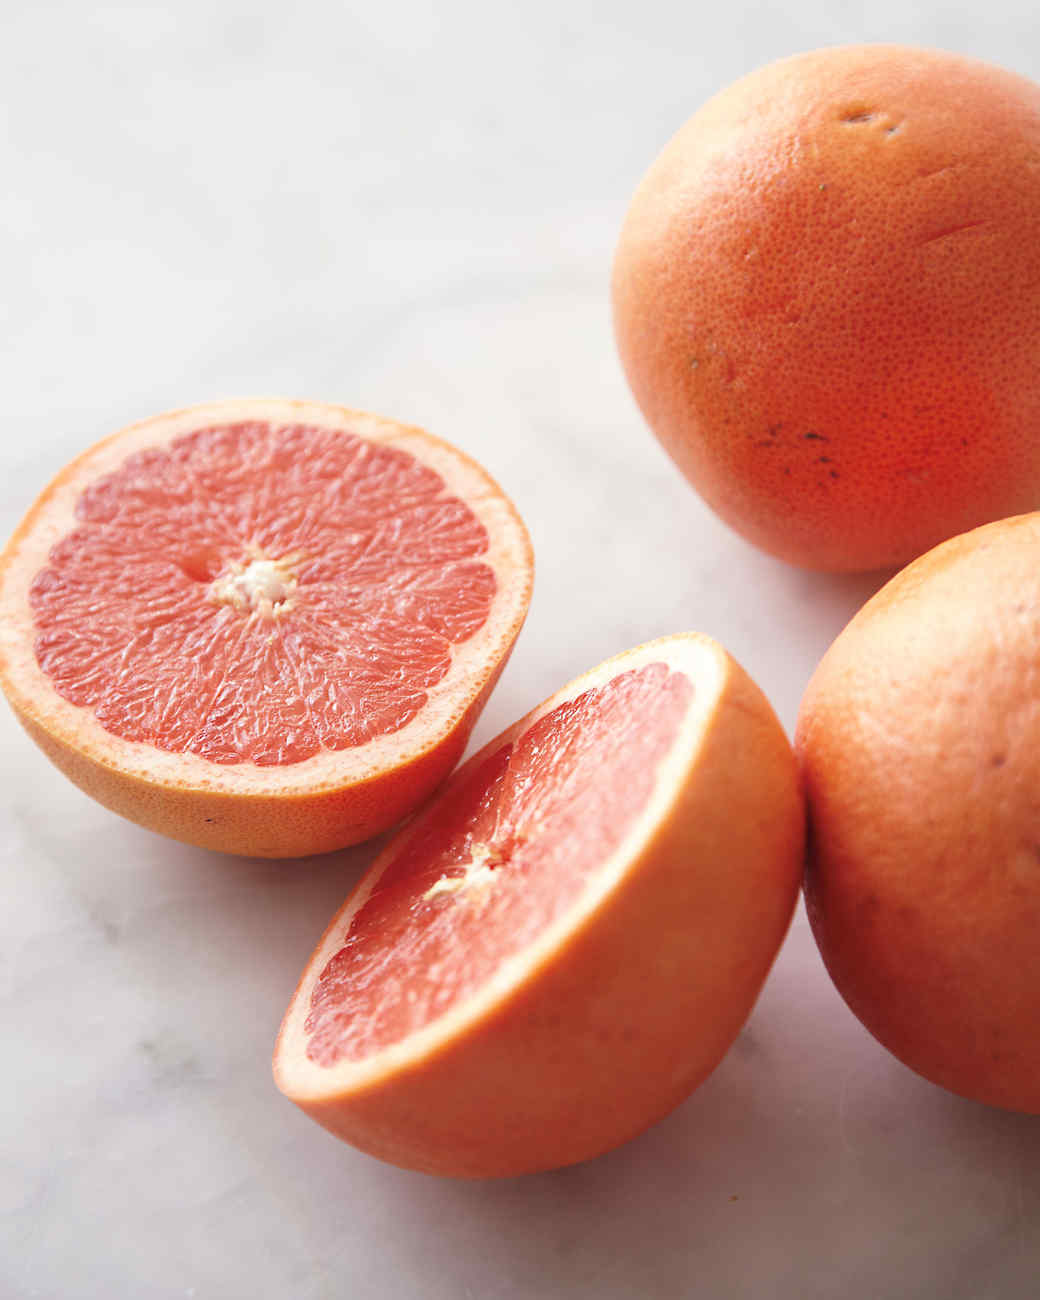 grapefruit-006-mld110677.jpg